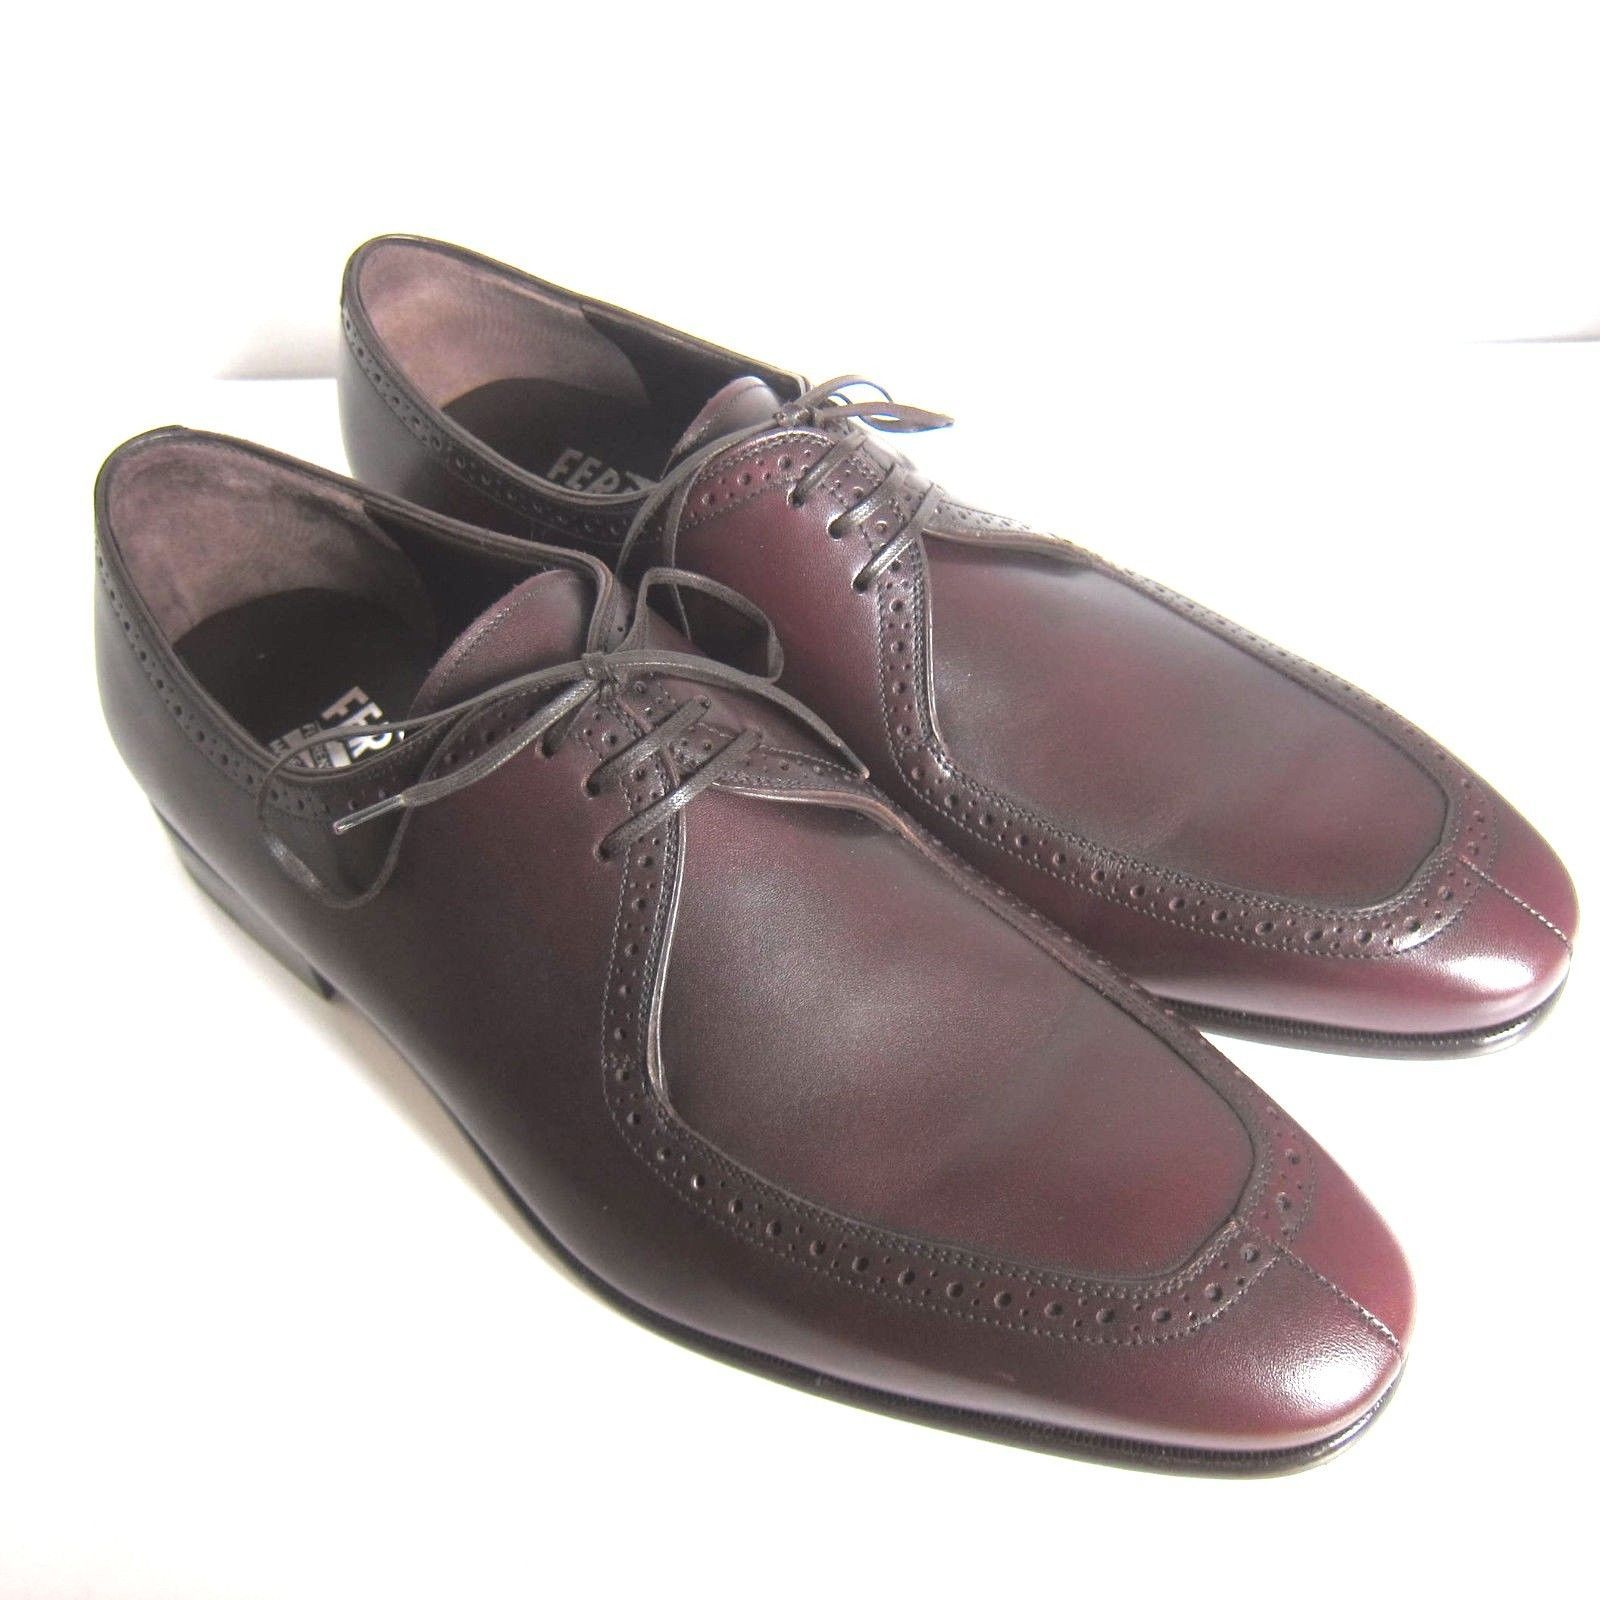 319031deff7e C-1395252 New Salvatore Ferragamo Nikel Leather Oxfords Shoes Size US 10 EE  -  289.99